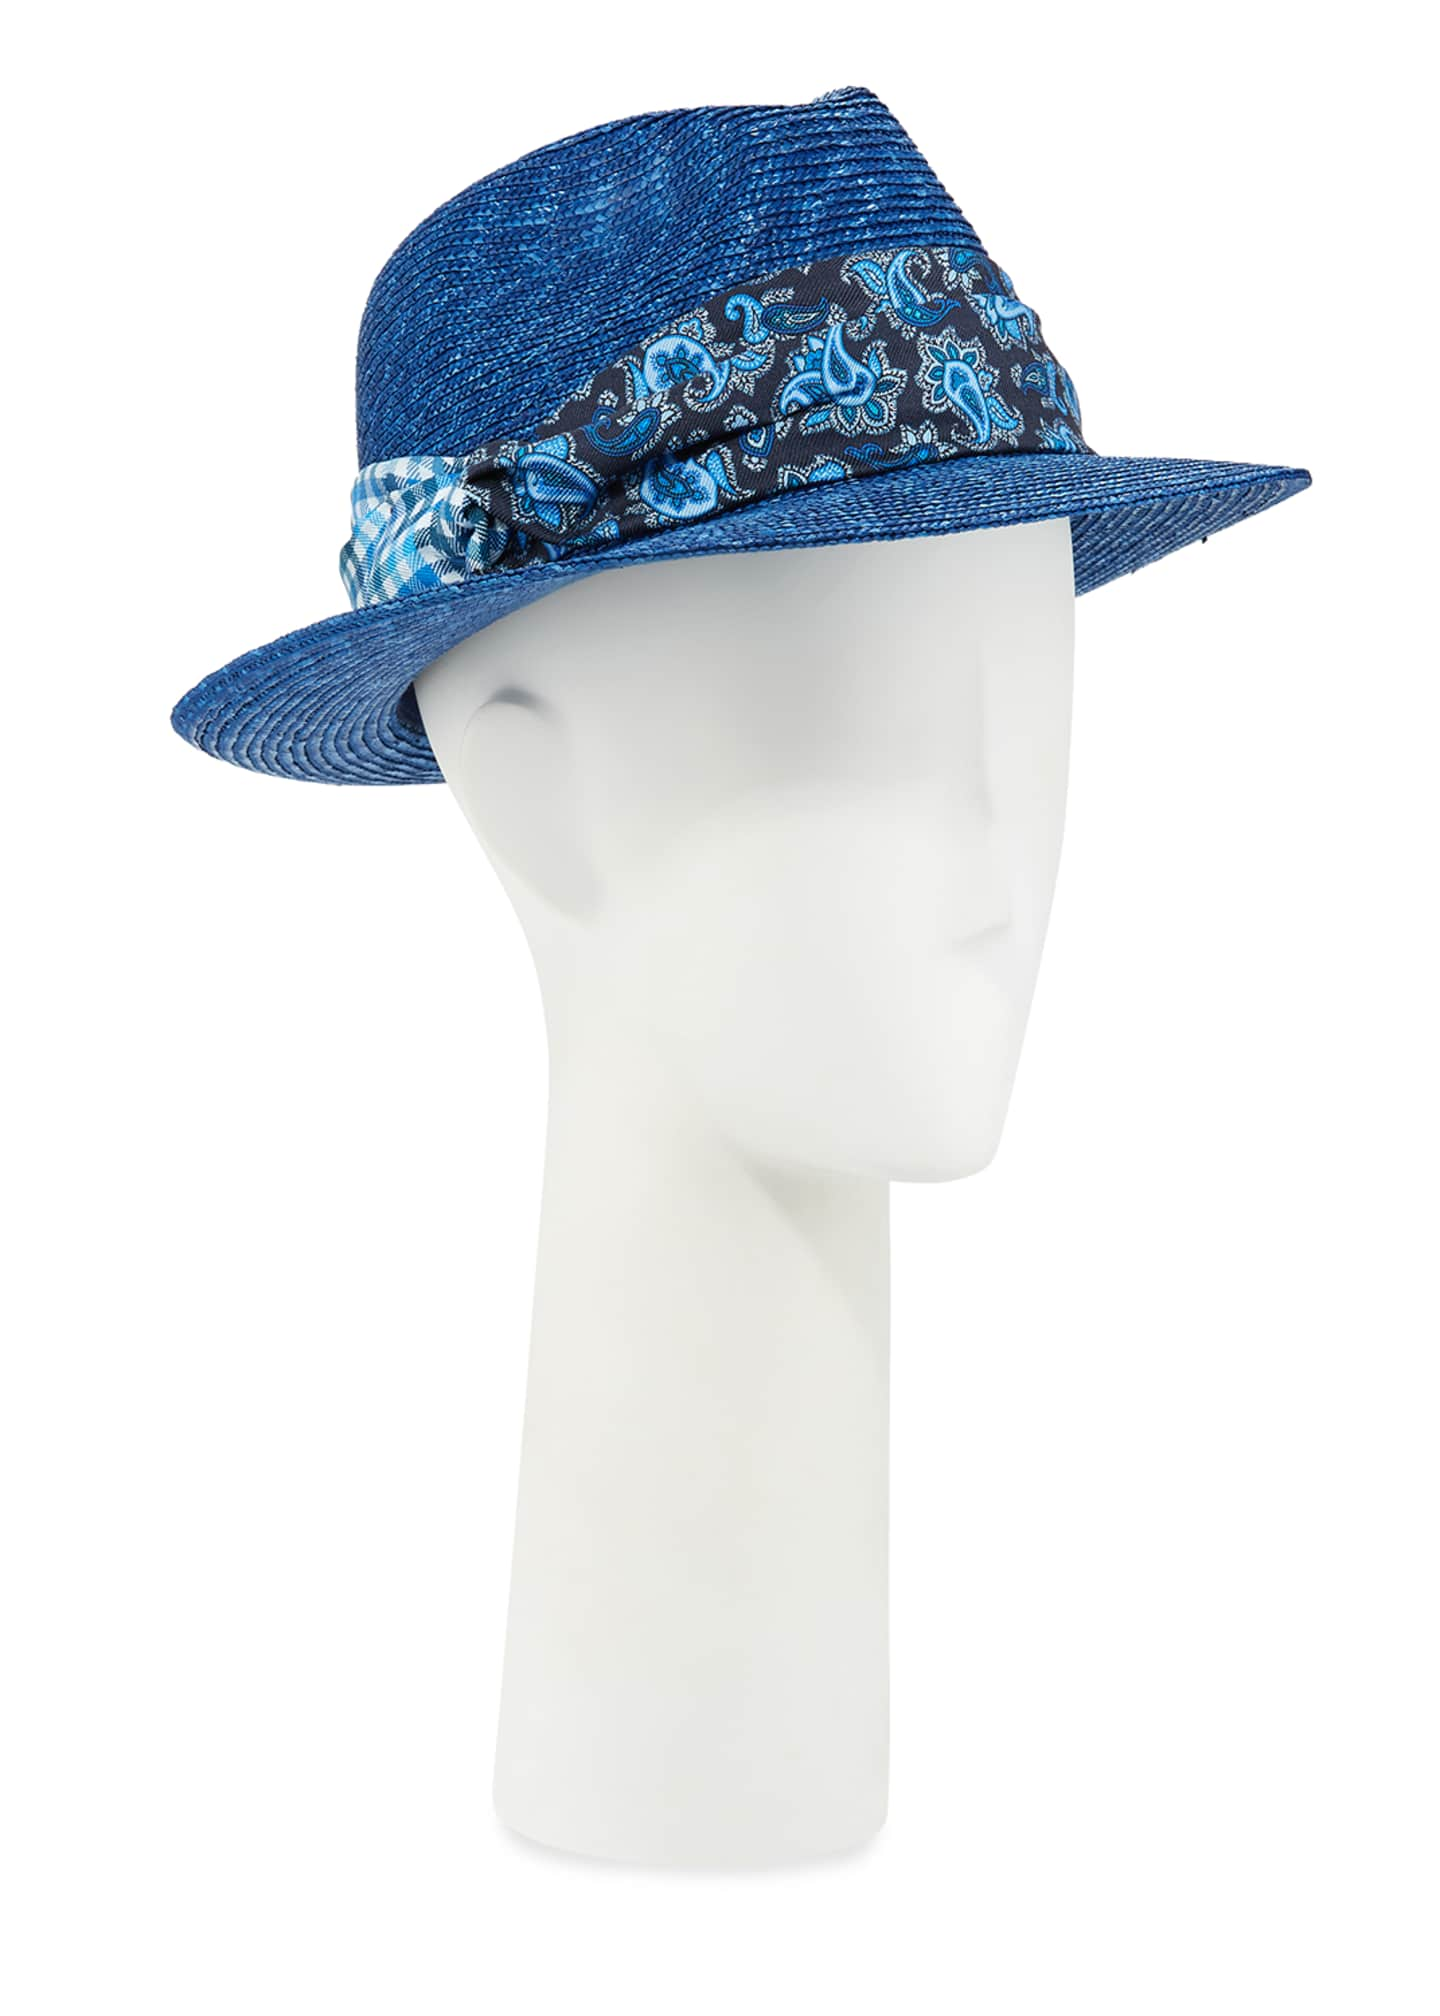 Etro Men's Straw Fedora Hat with Silk Band